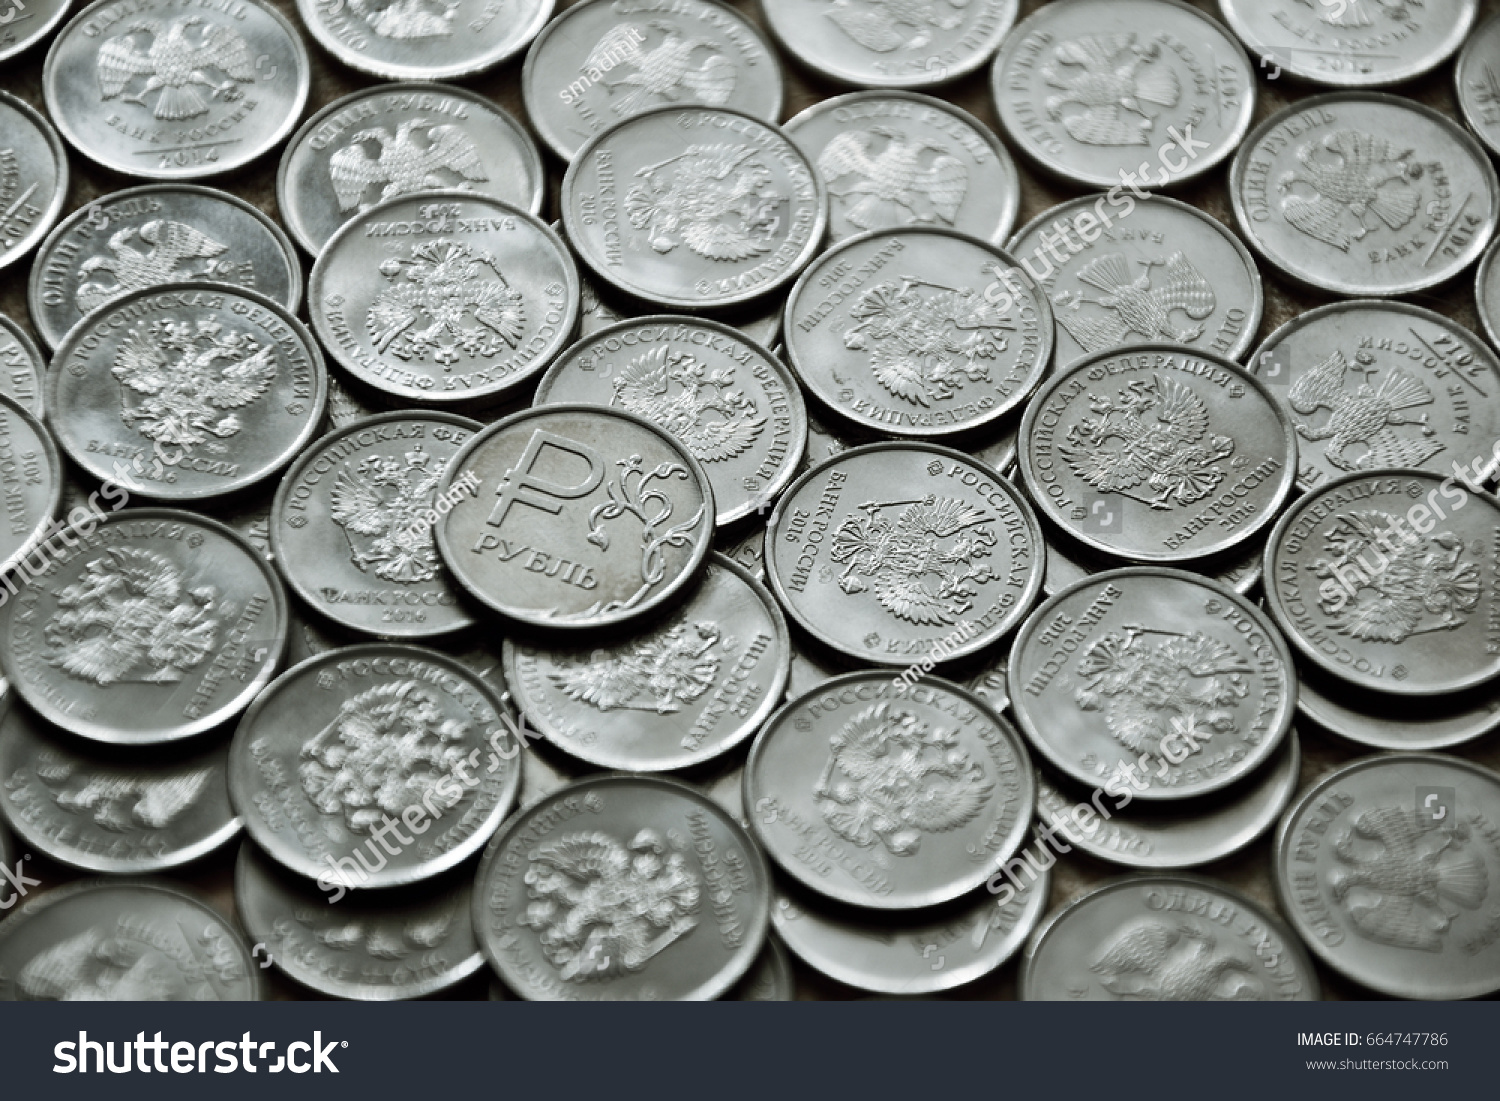 Coin With The Symbol Of Russian Ruble On The Coins Background Ez